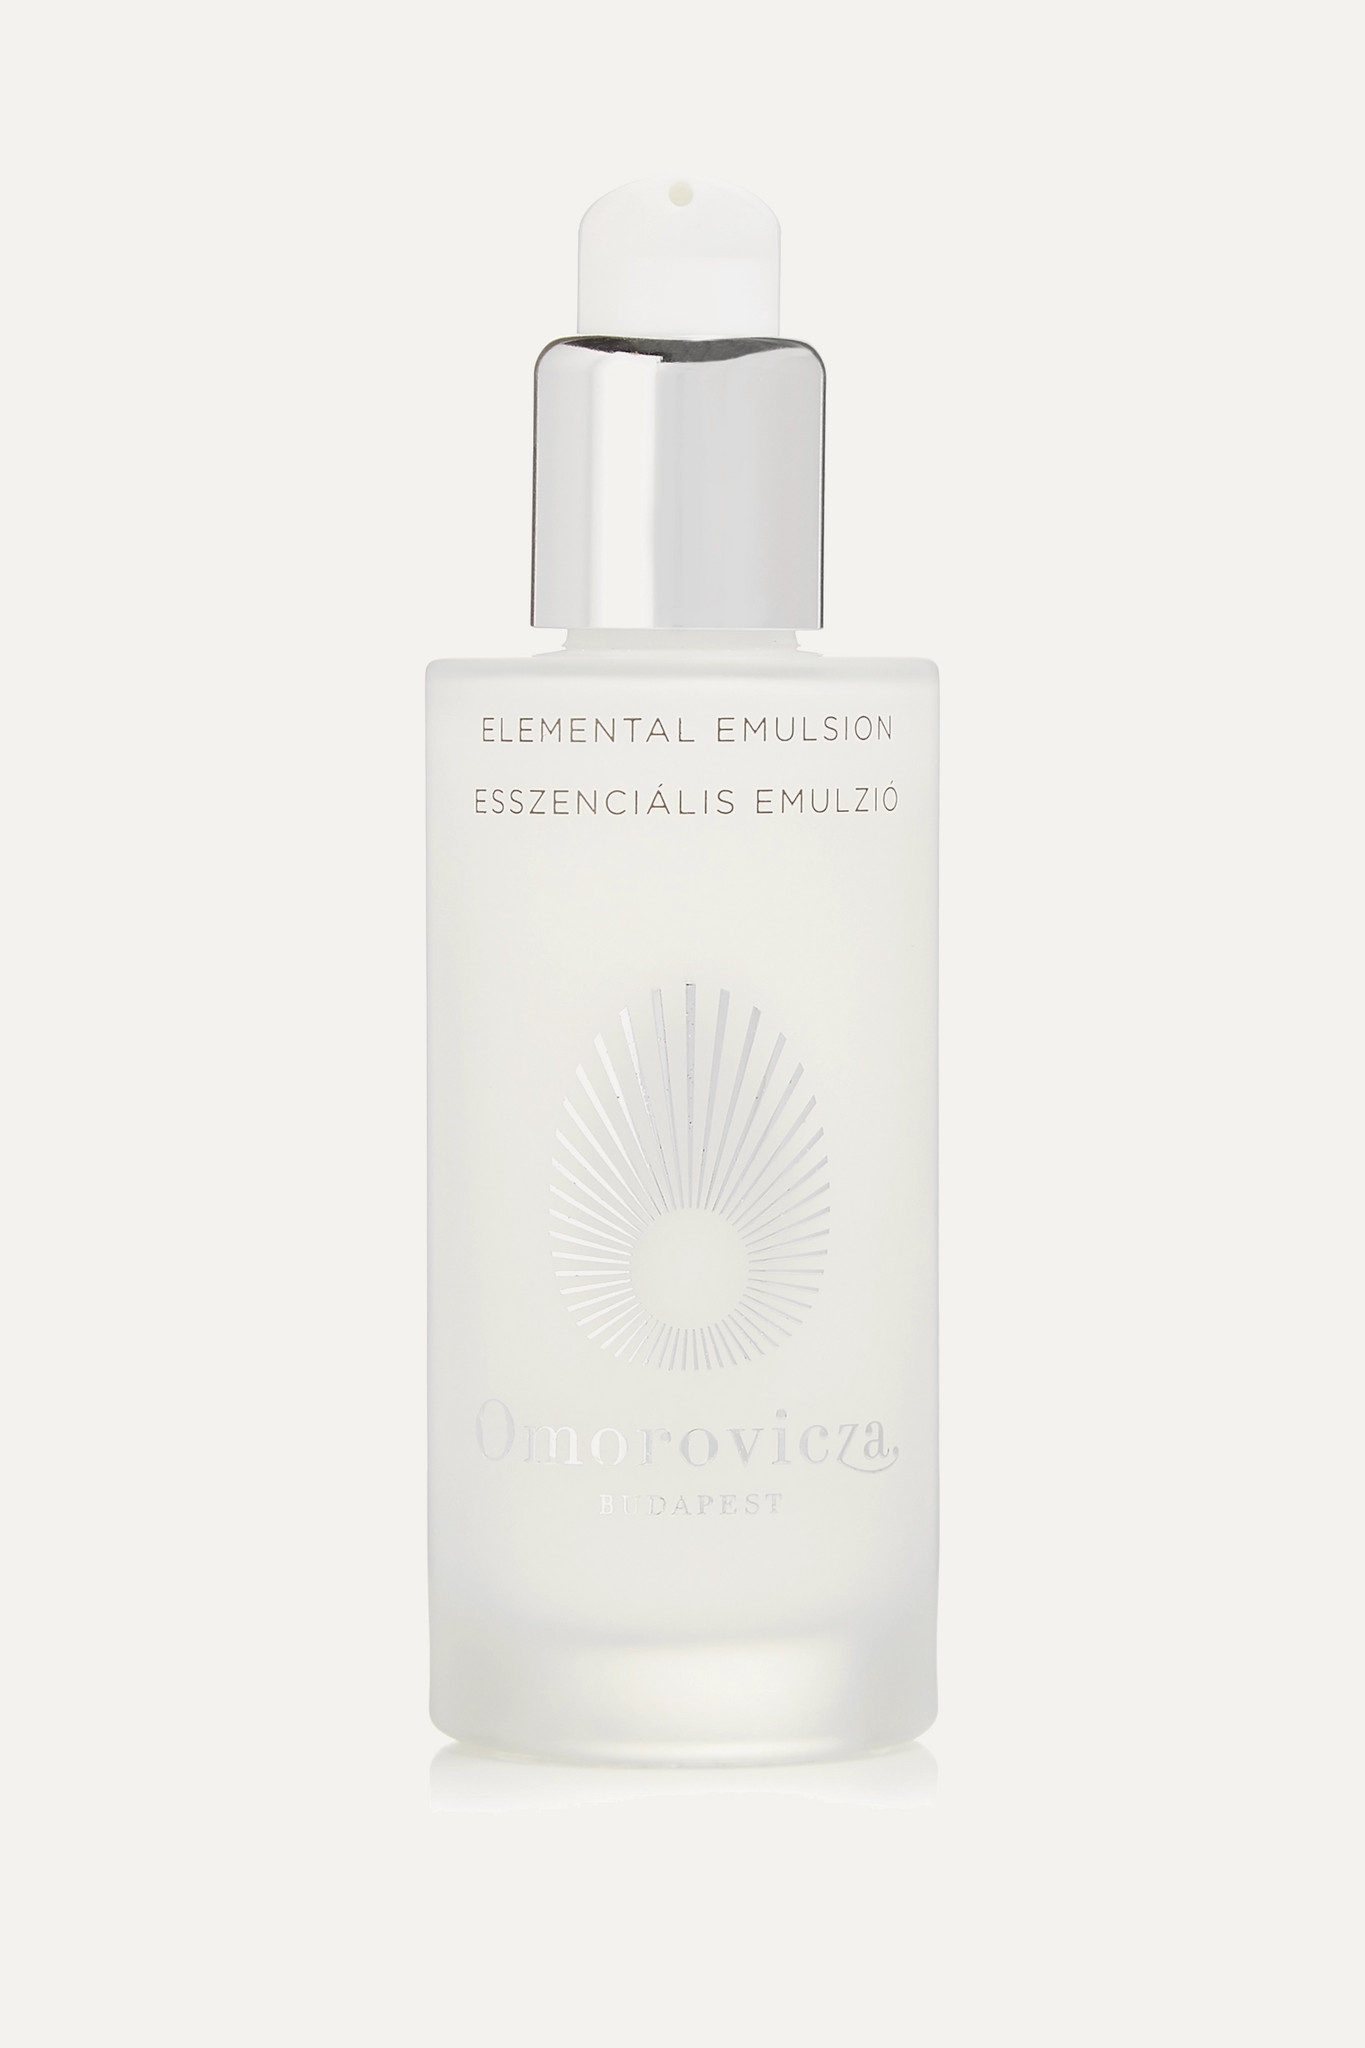 OMOROVICZA - Elemental Emulsion, 30ml - one size